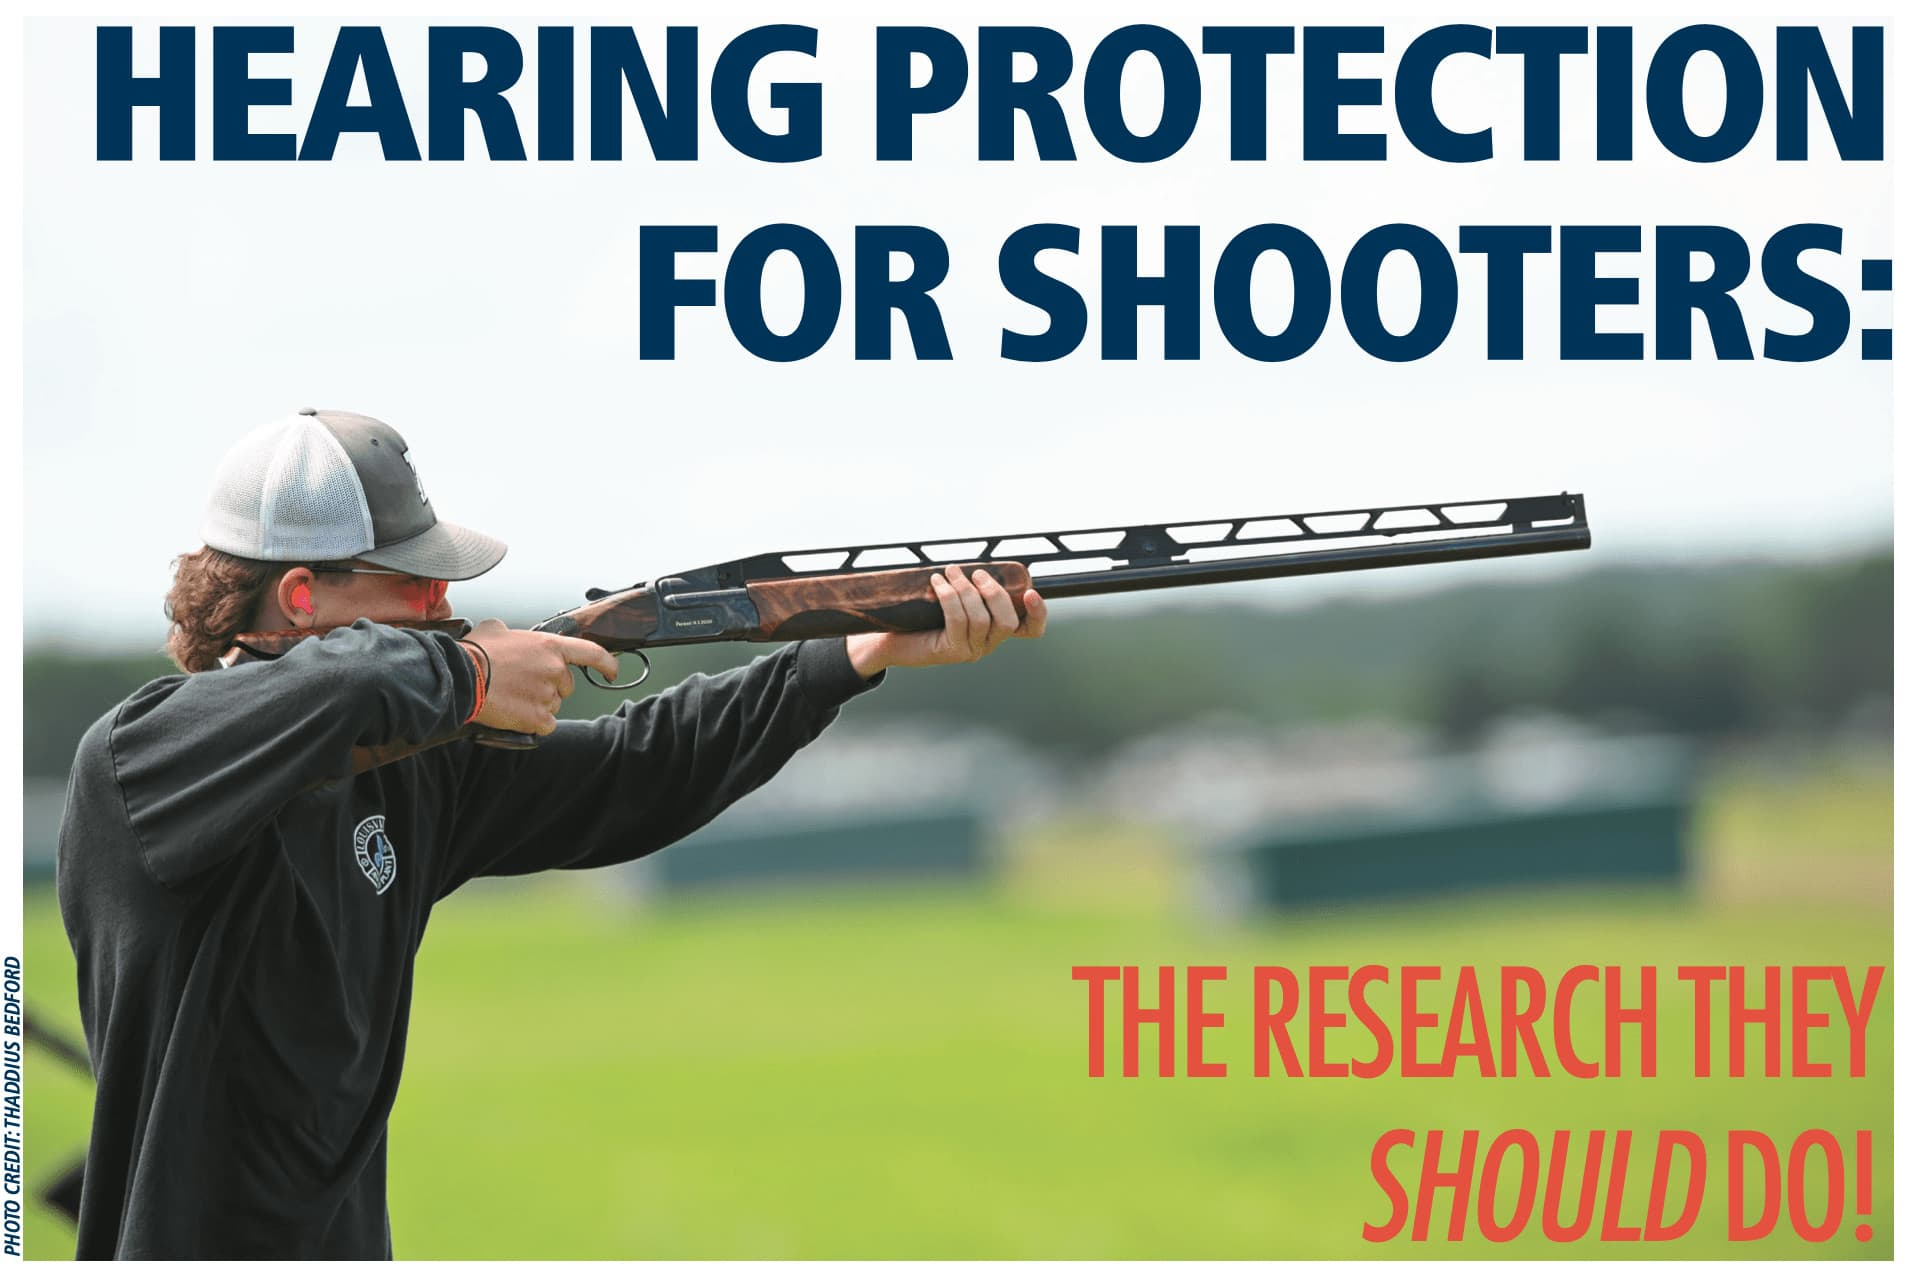 Hearing Protection for shooters